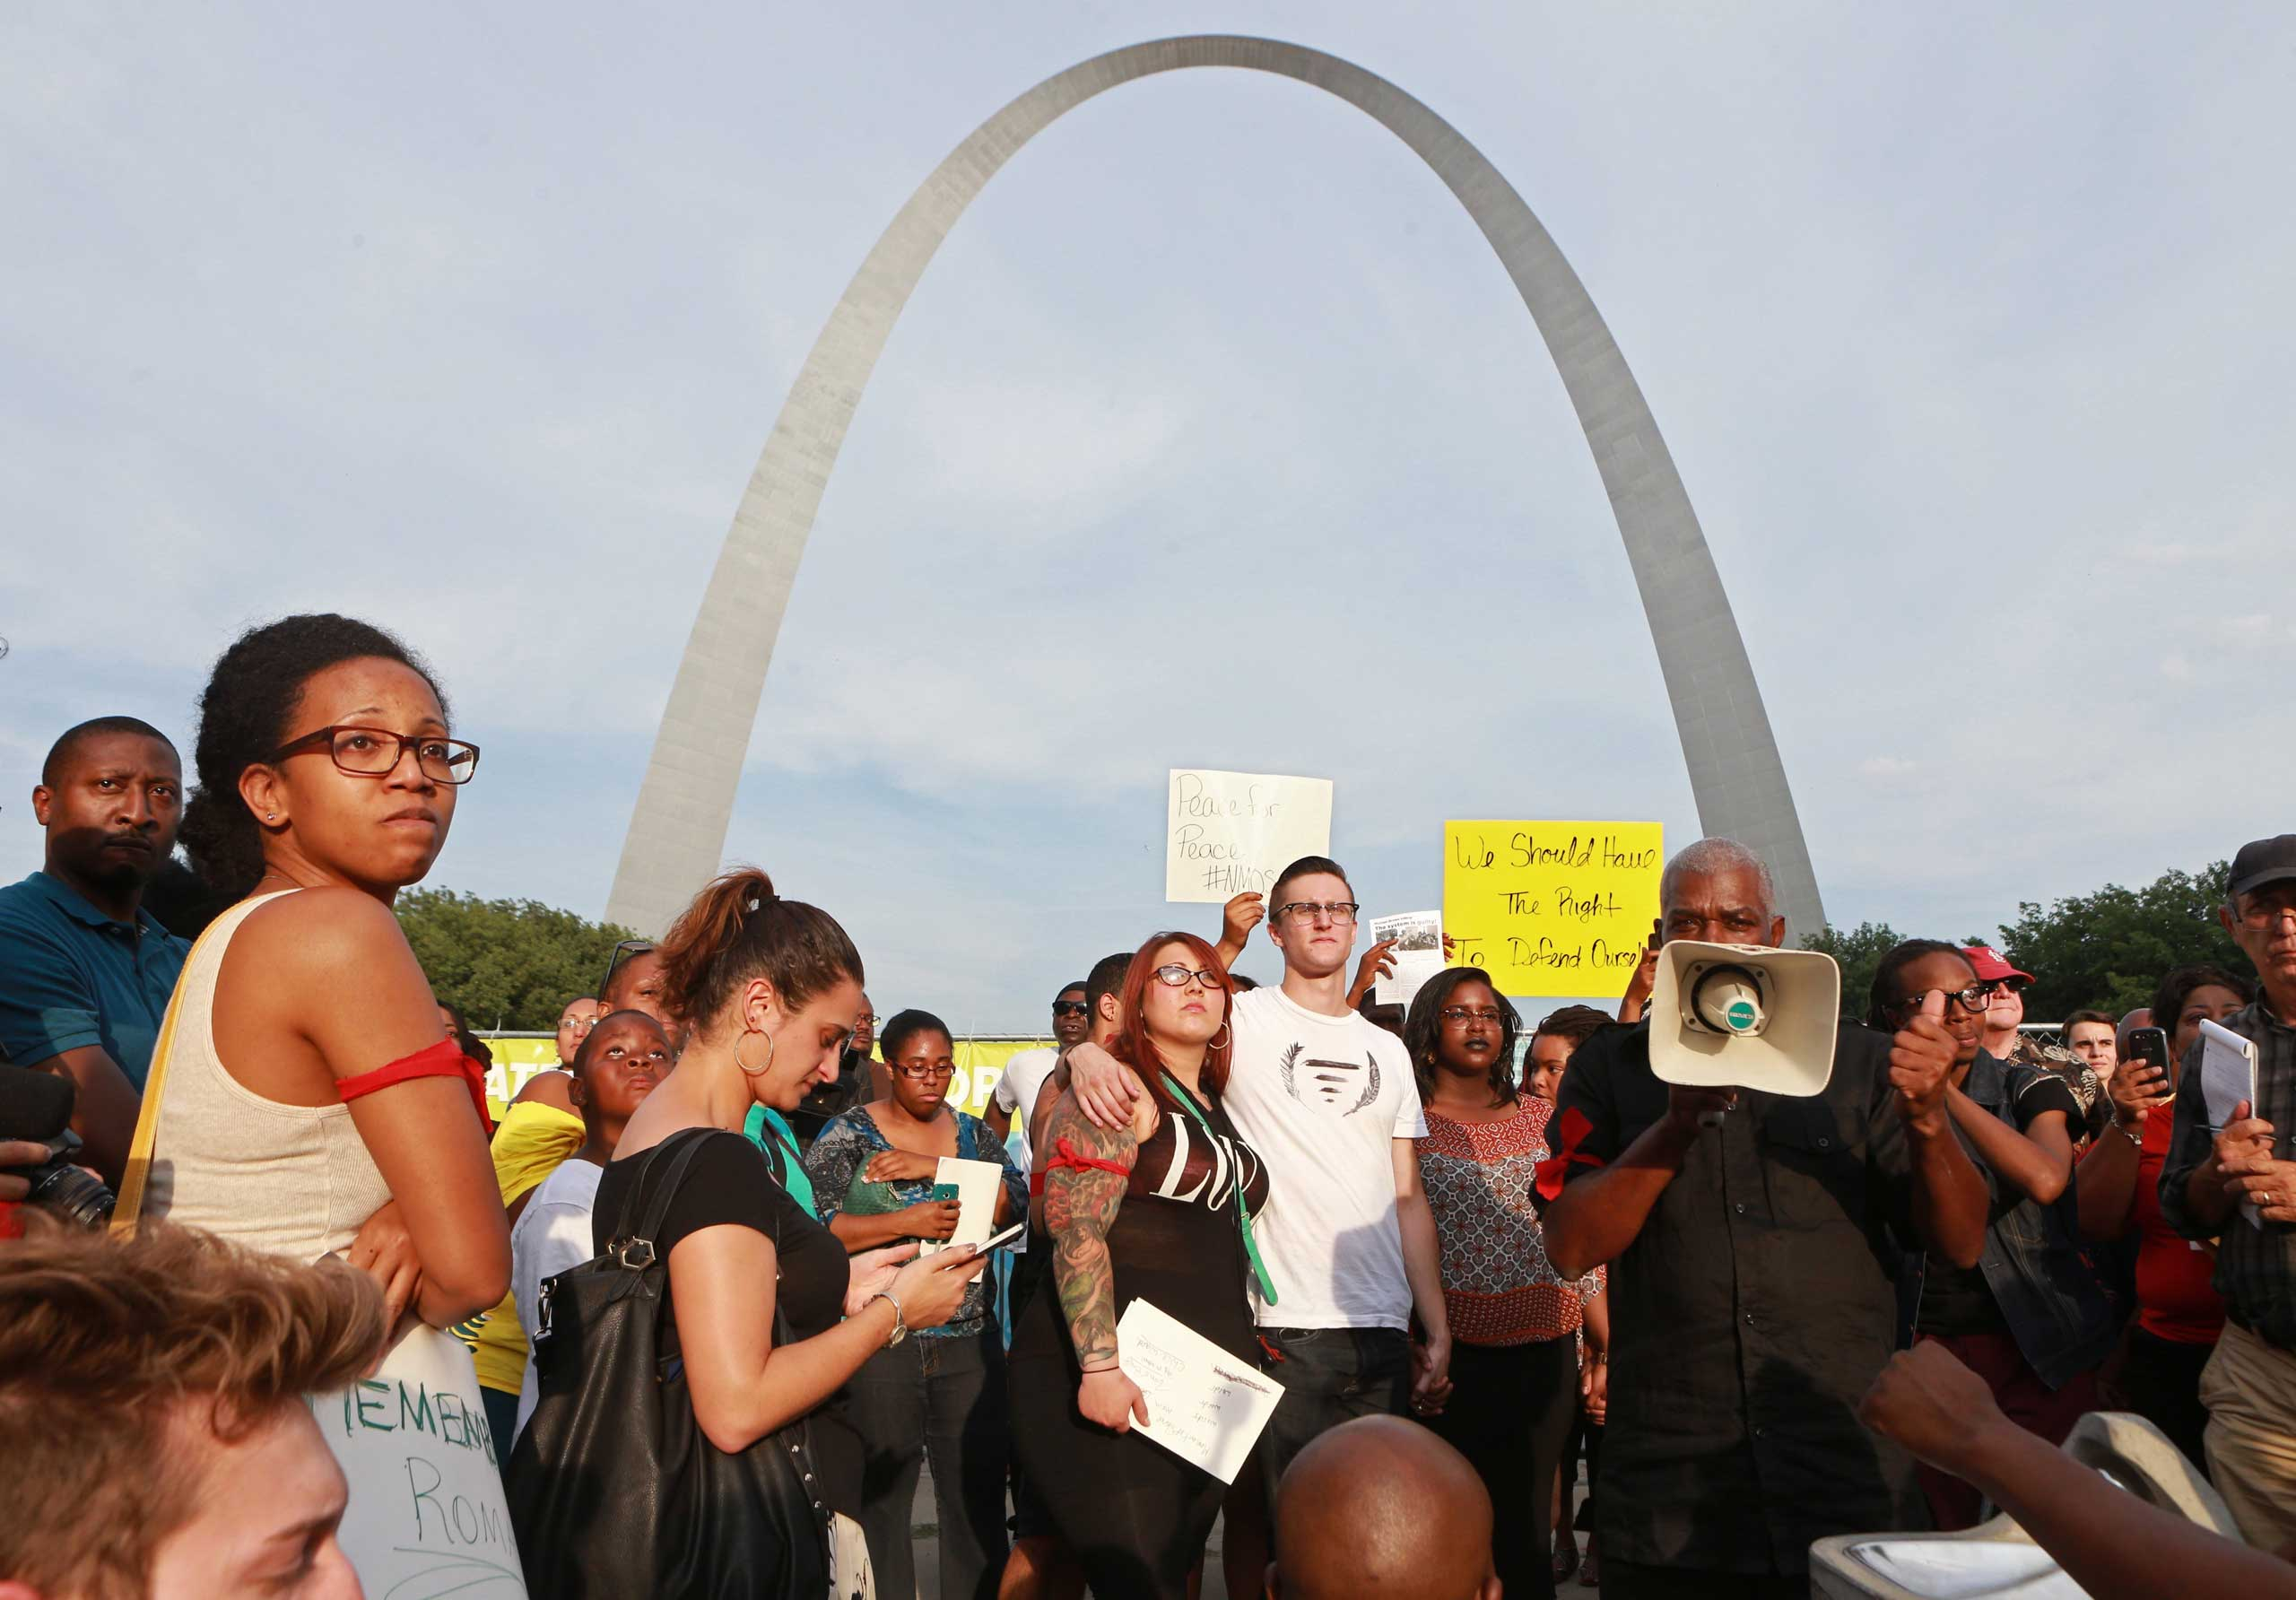 Aug. 14, 2014. A crowd of several hundred gatheres in a park near the Gateway Arch for a moment of silence on Thursday in St. Louis during a peace vigil and moment of silence for Michael Brown, an unarmed teenager who was shot and killed by Ferguson, Mo., police on Saturday.